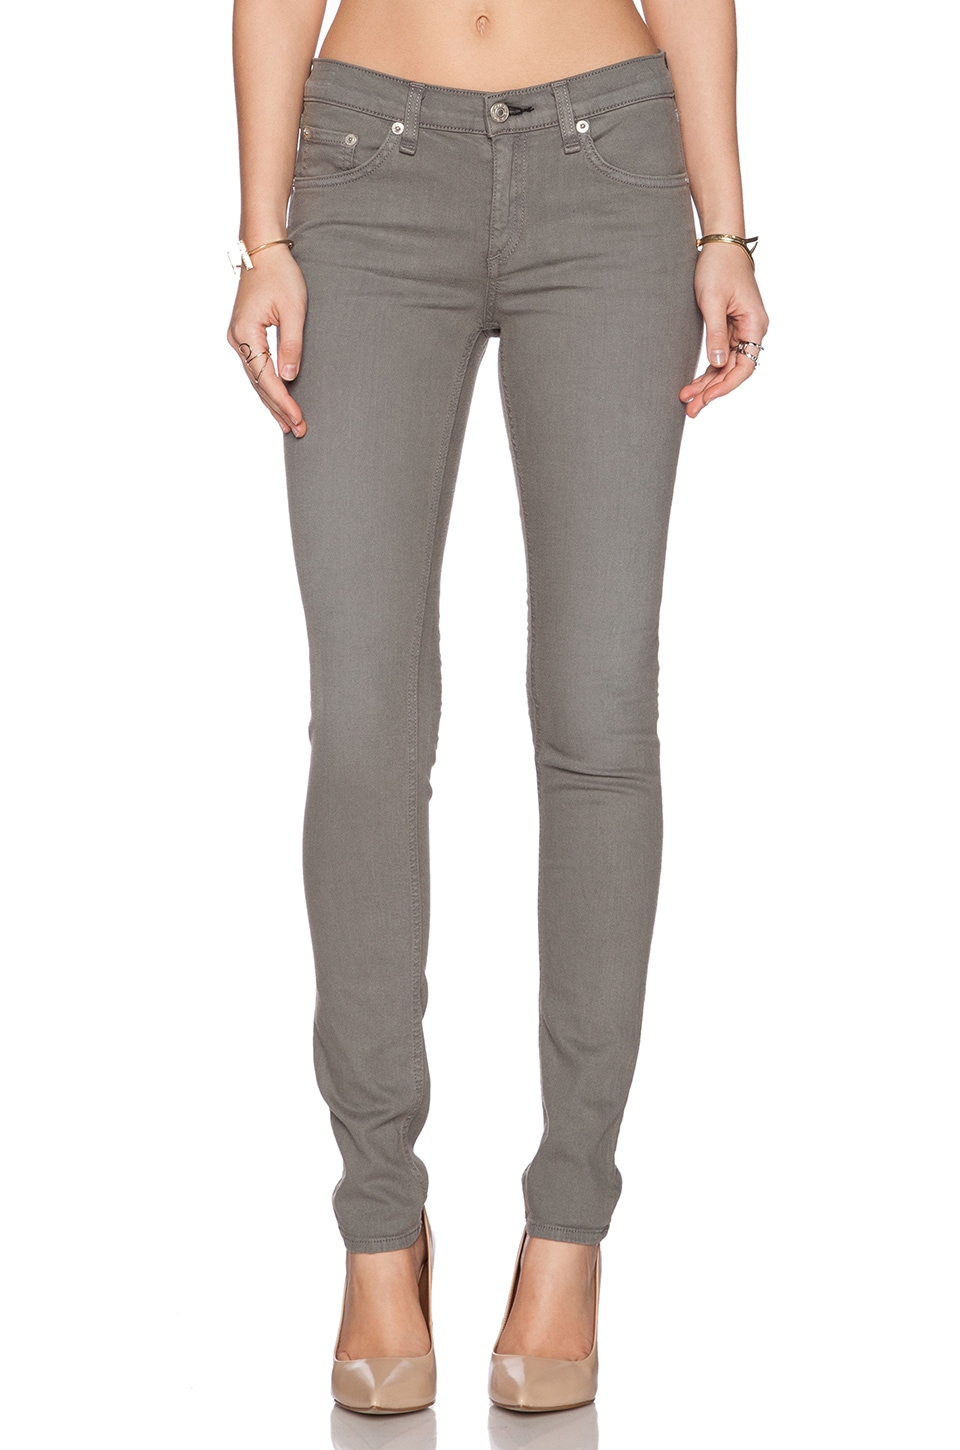 Rag & Bone The Skinny in Distressed Sage